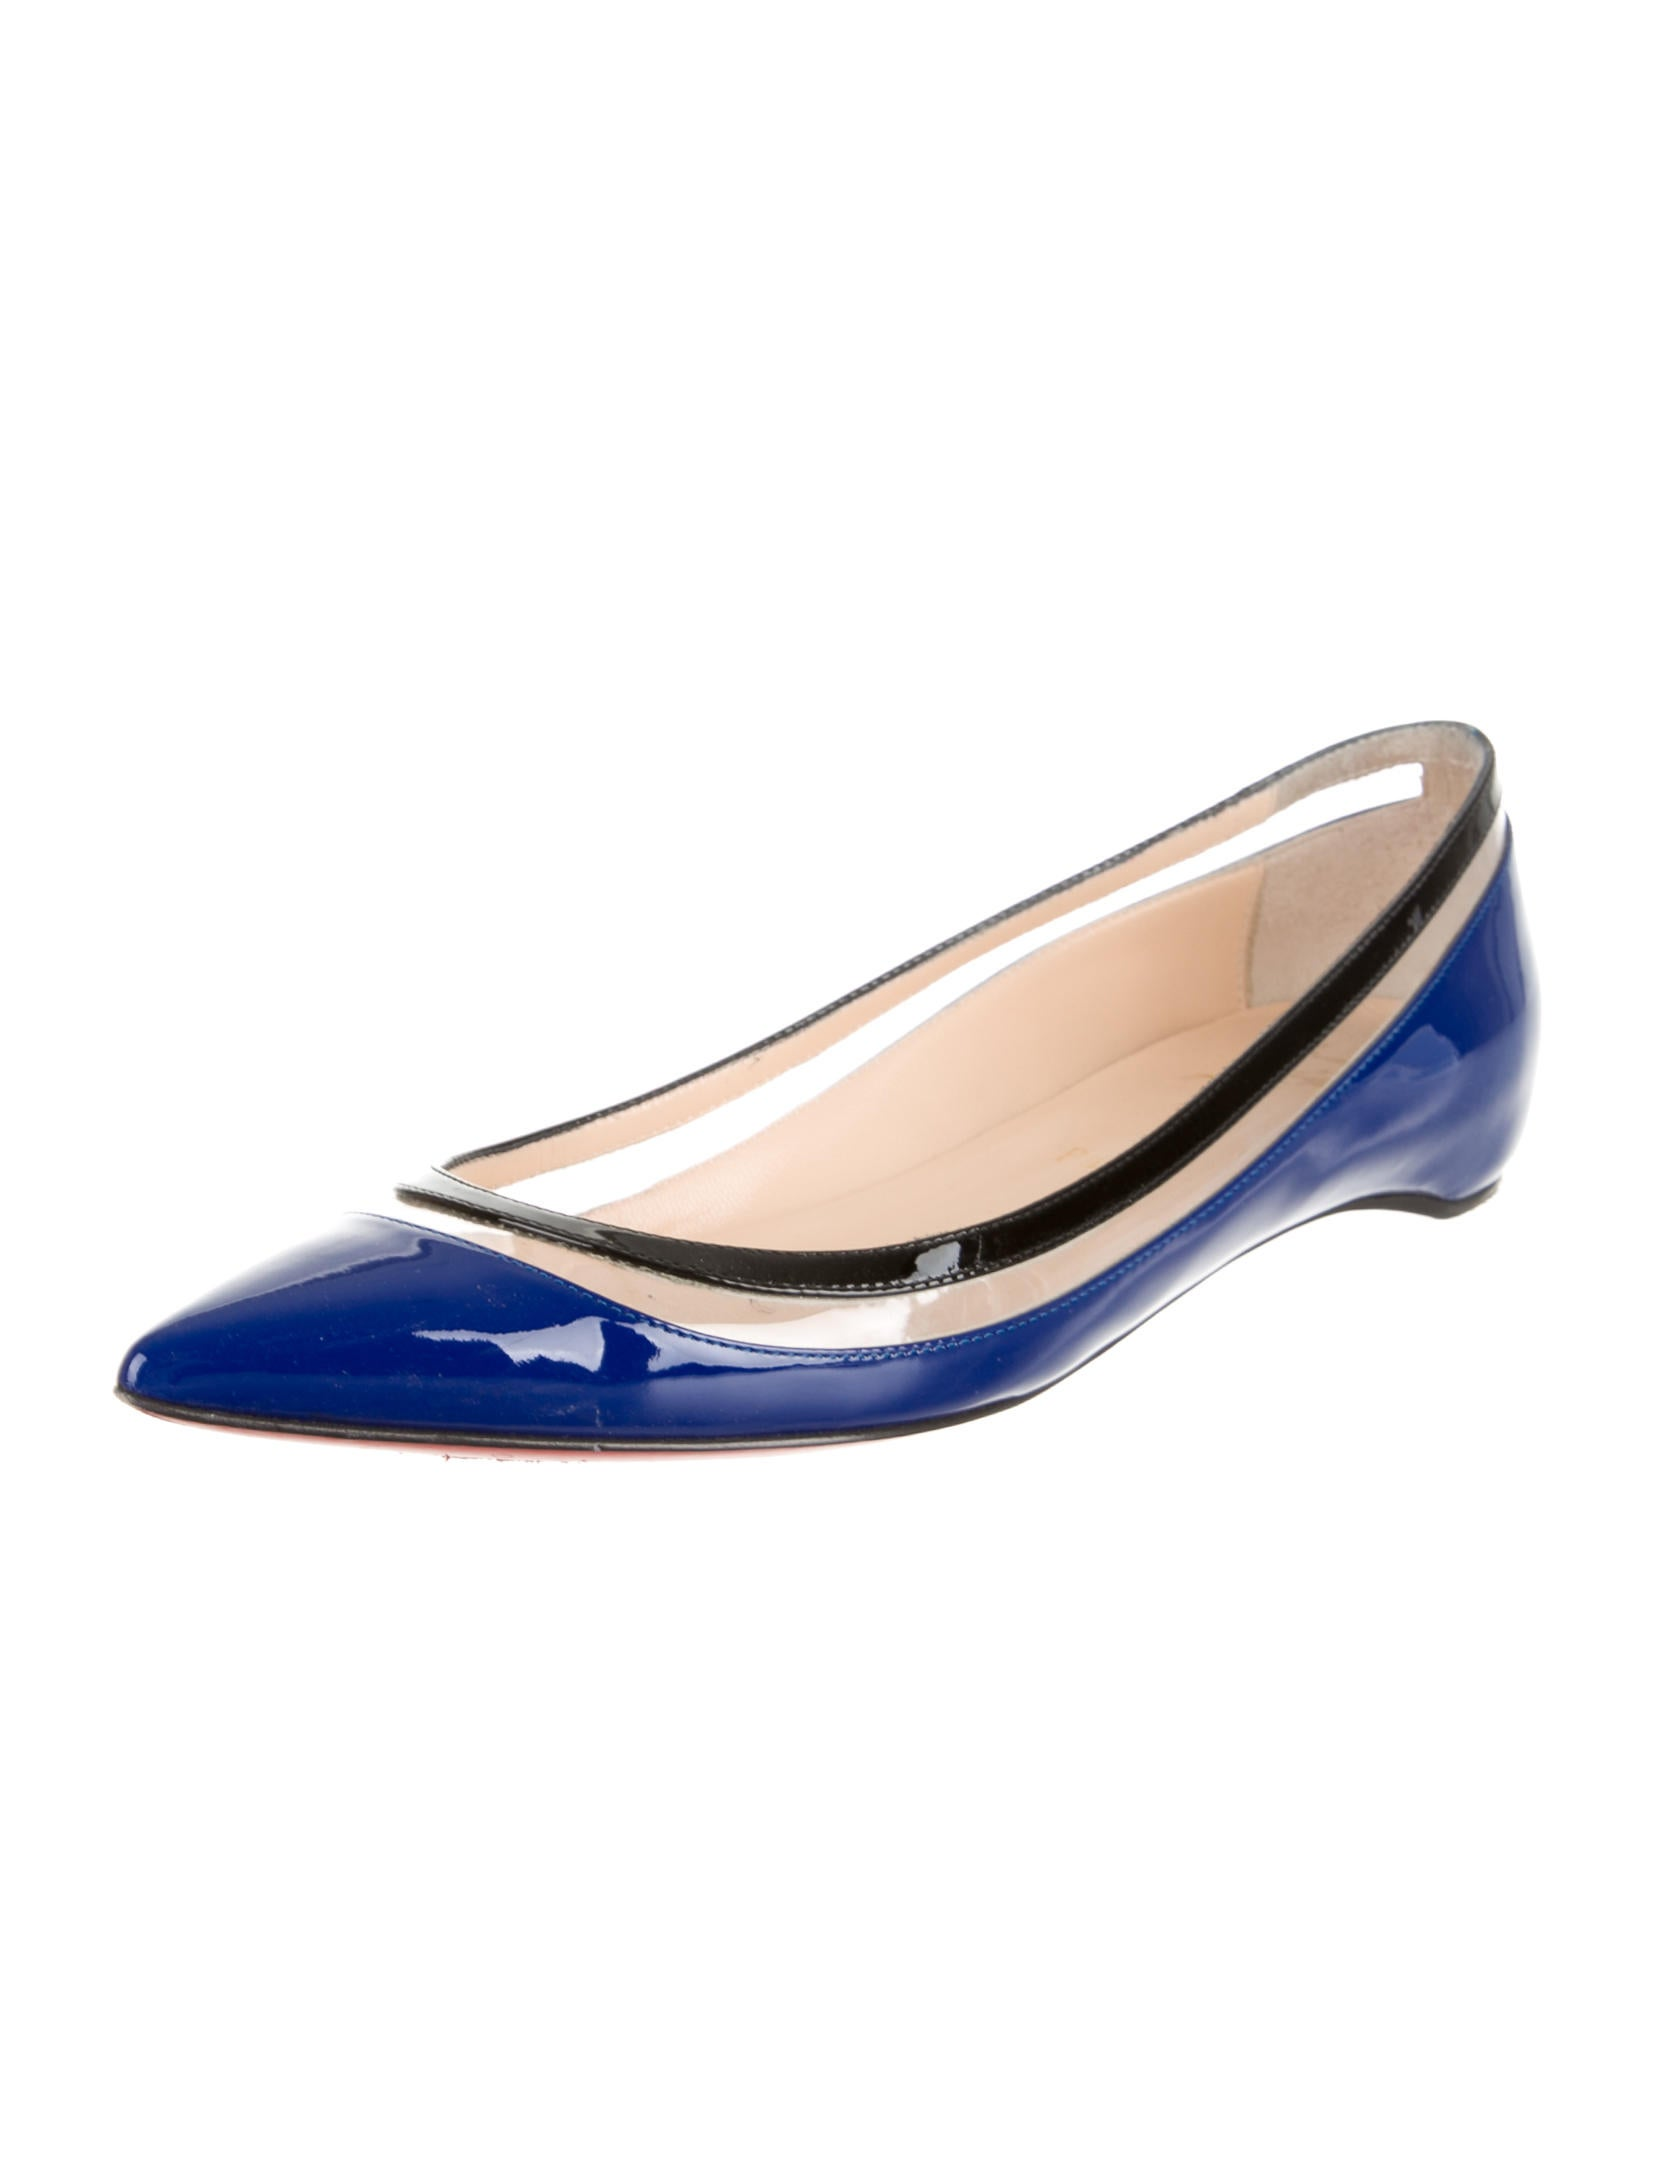 christian louboutin pvc-accented flats